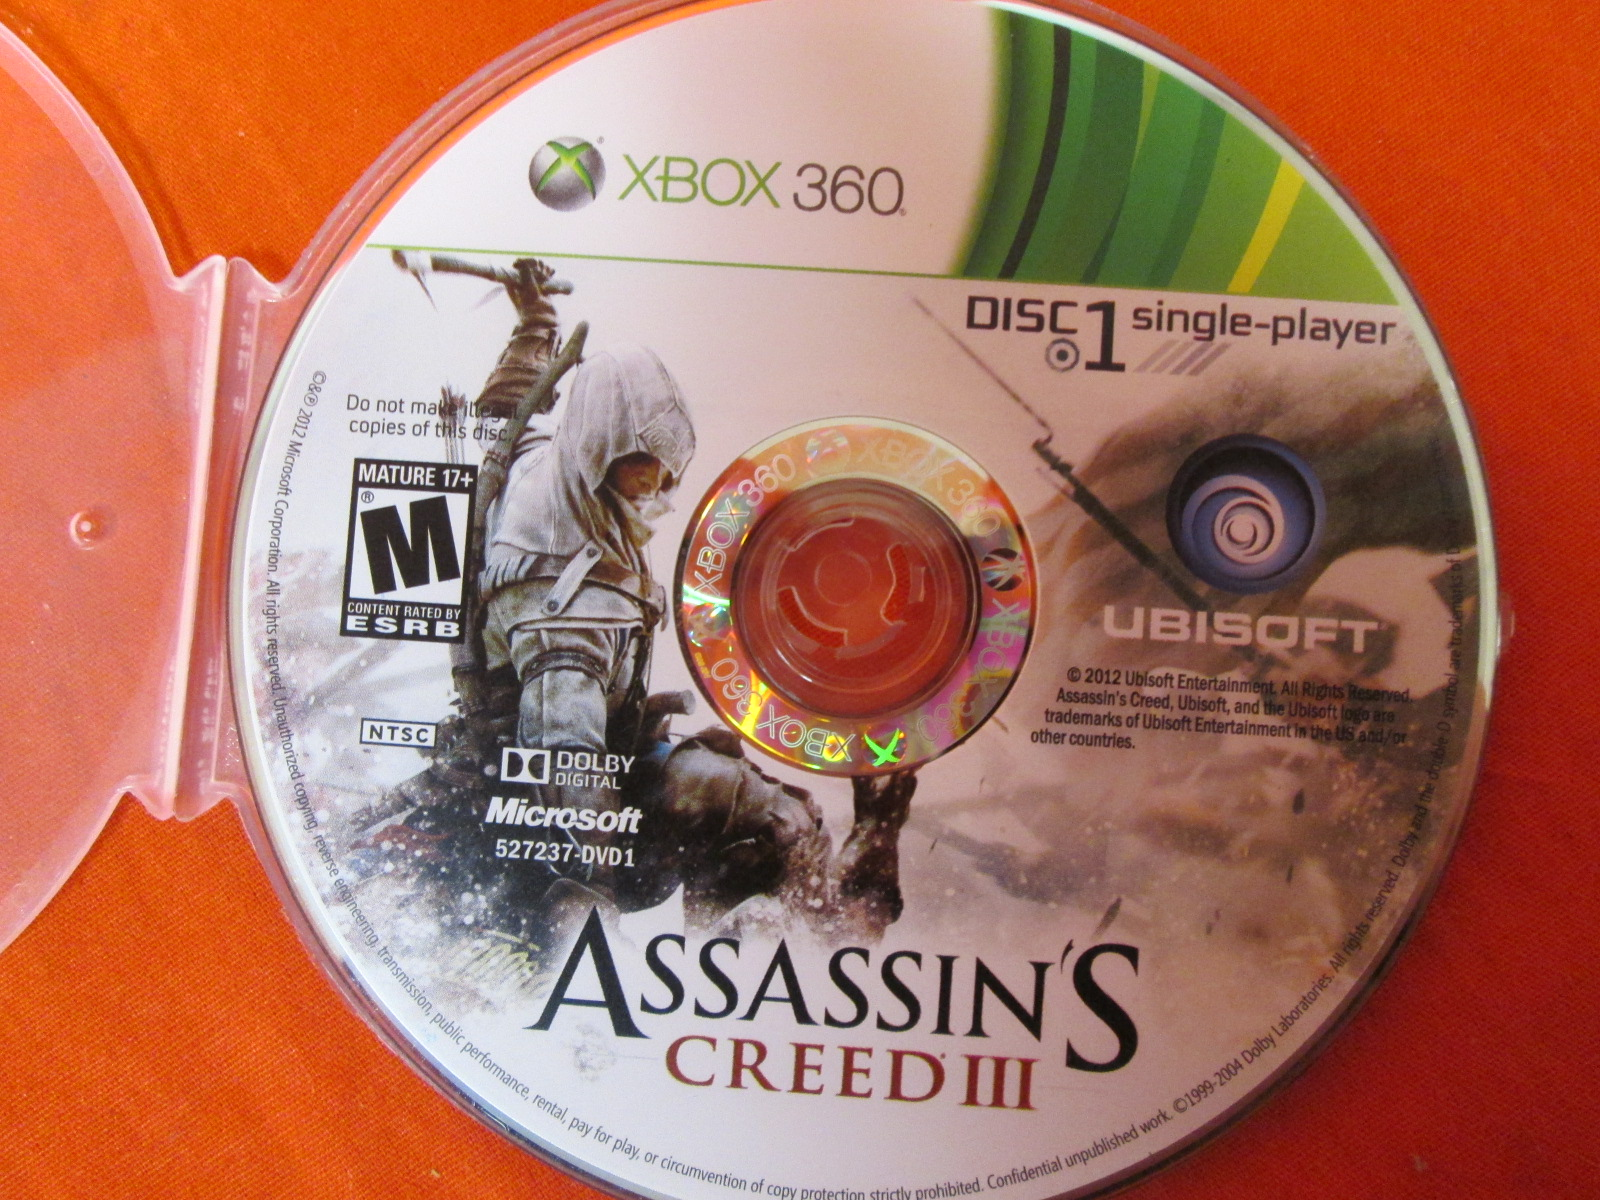 Assassin's Creed III Disc 1 Only For Xbox 360